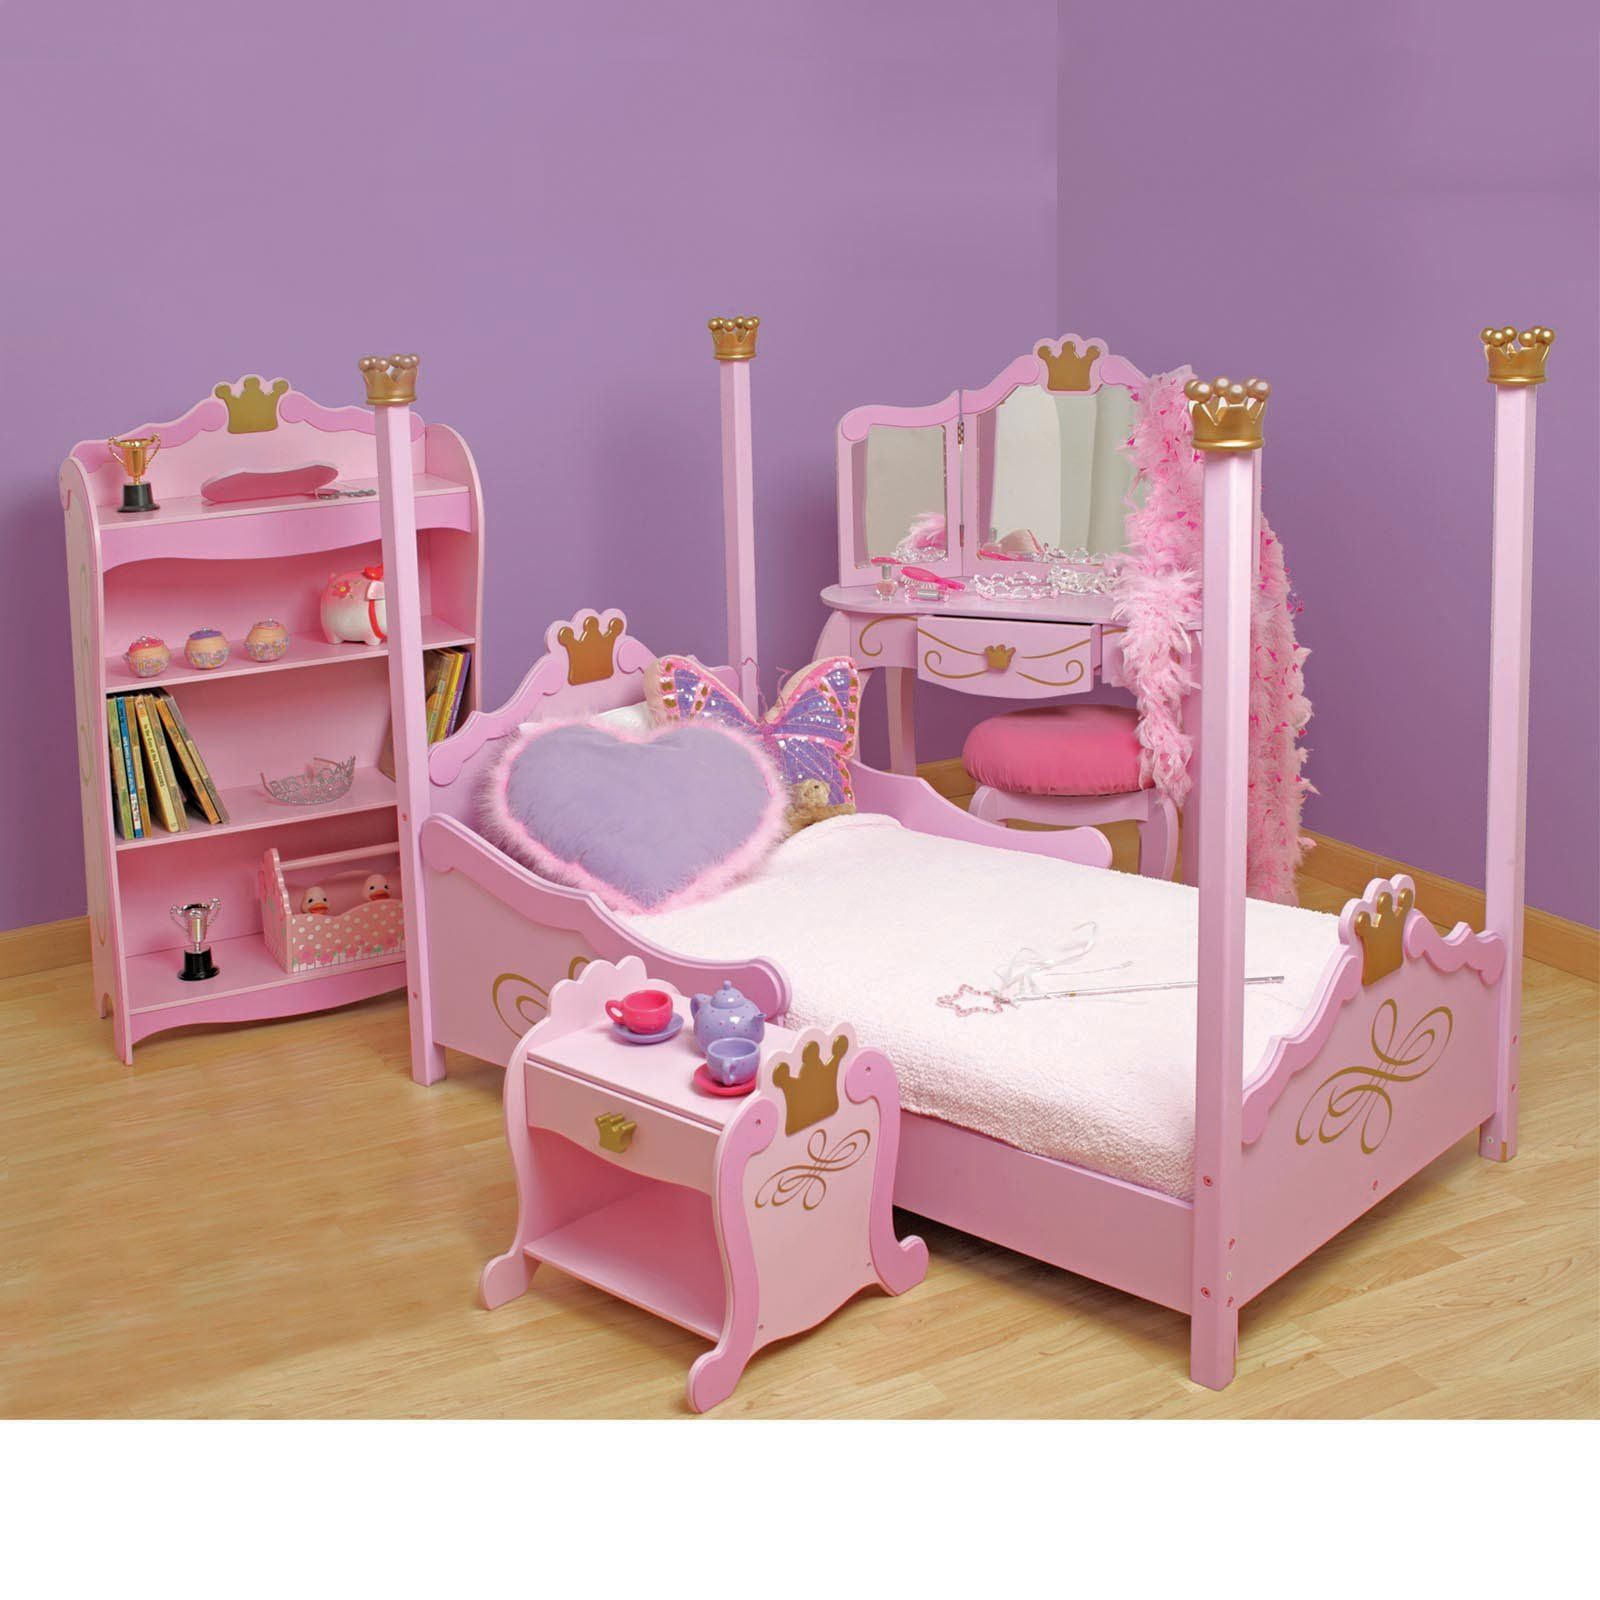 Cute Toddler Beds For Girls Home